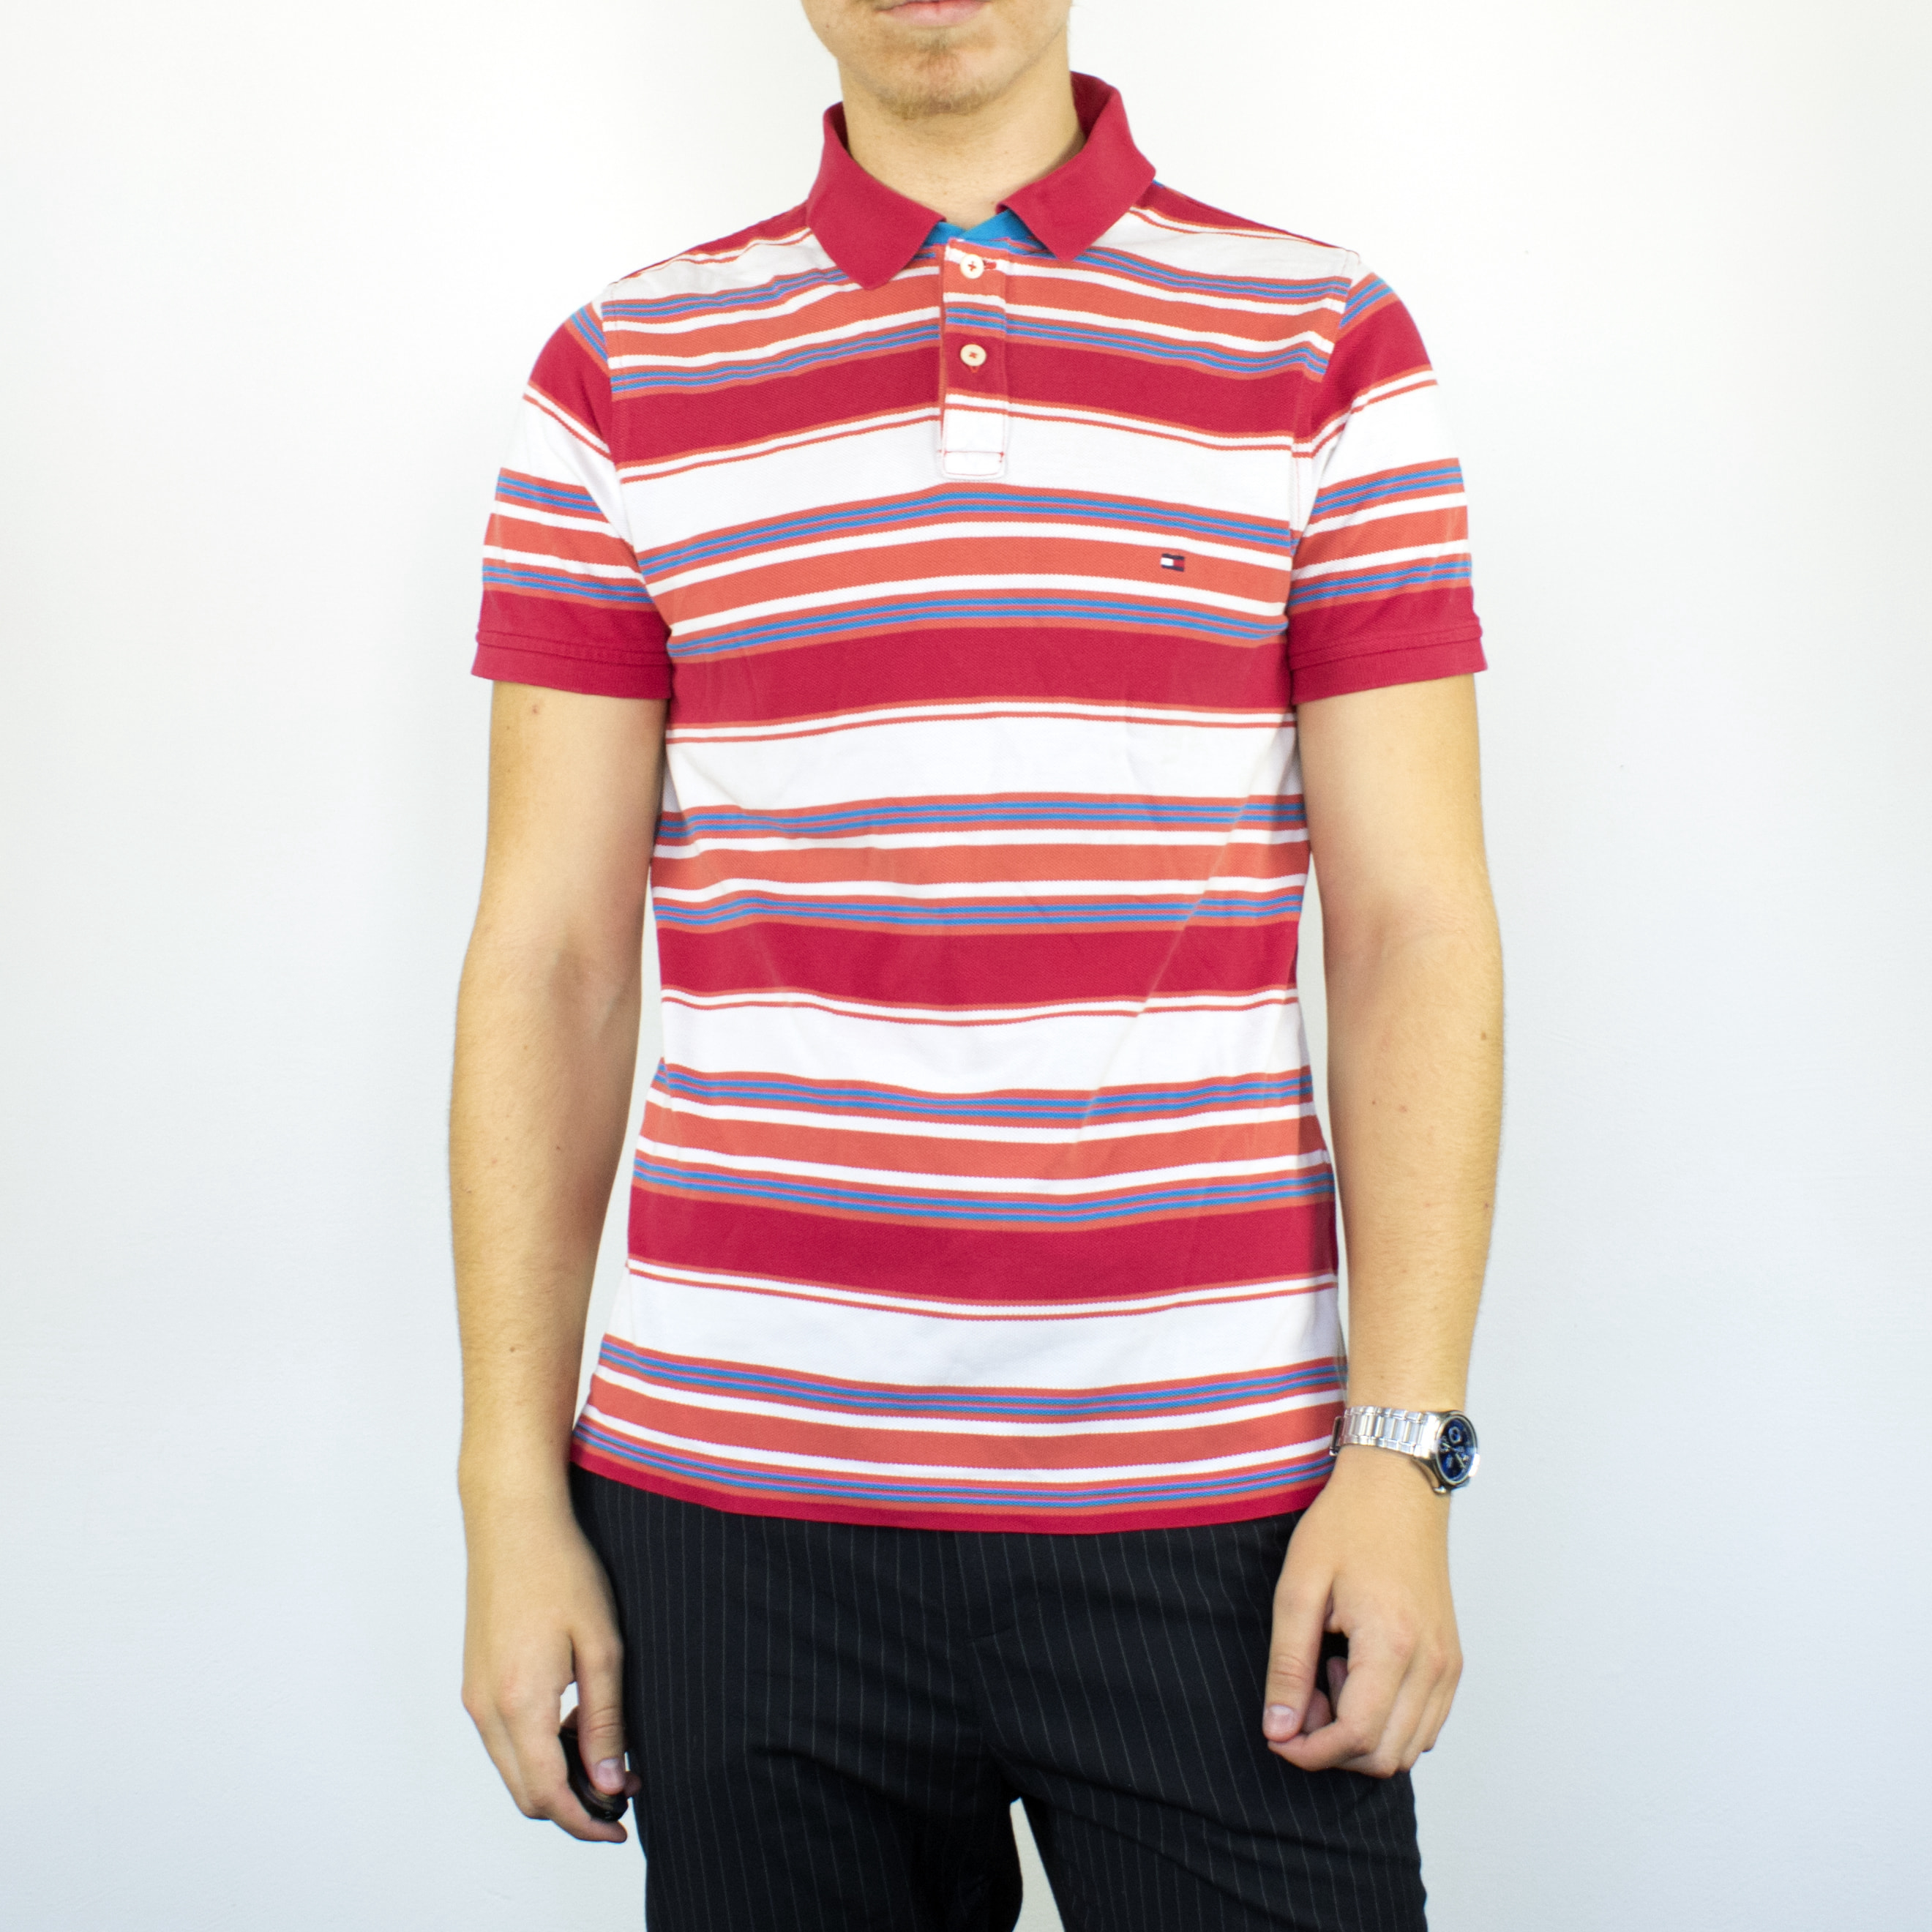 Unisex Vintage Tommy Hilfiger striped polo shirt in red and white